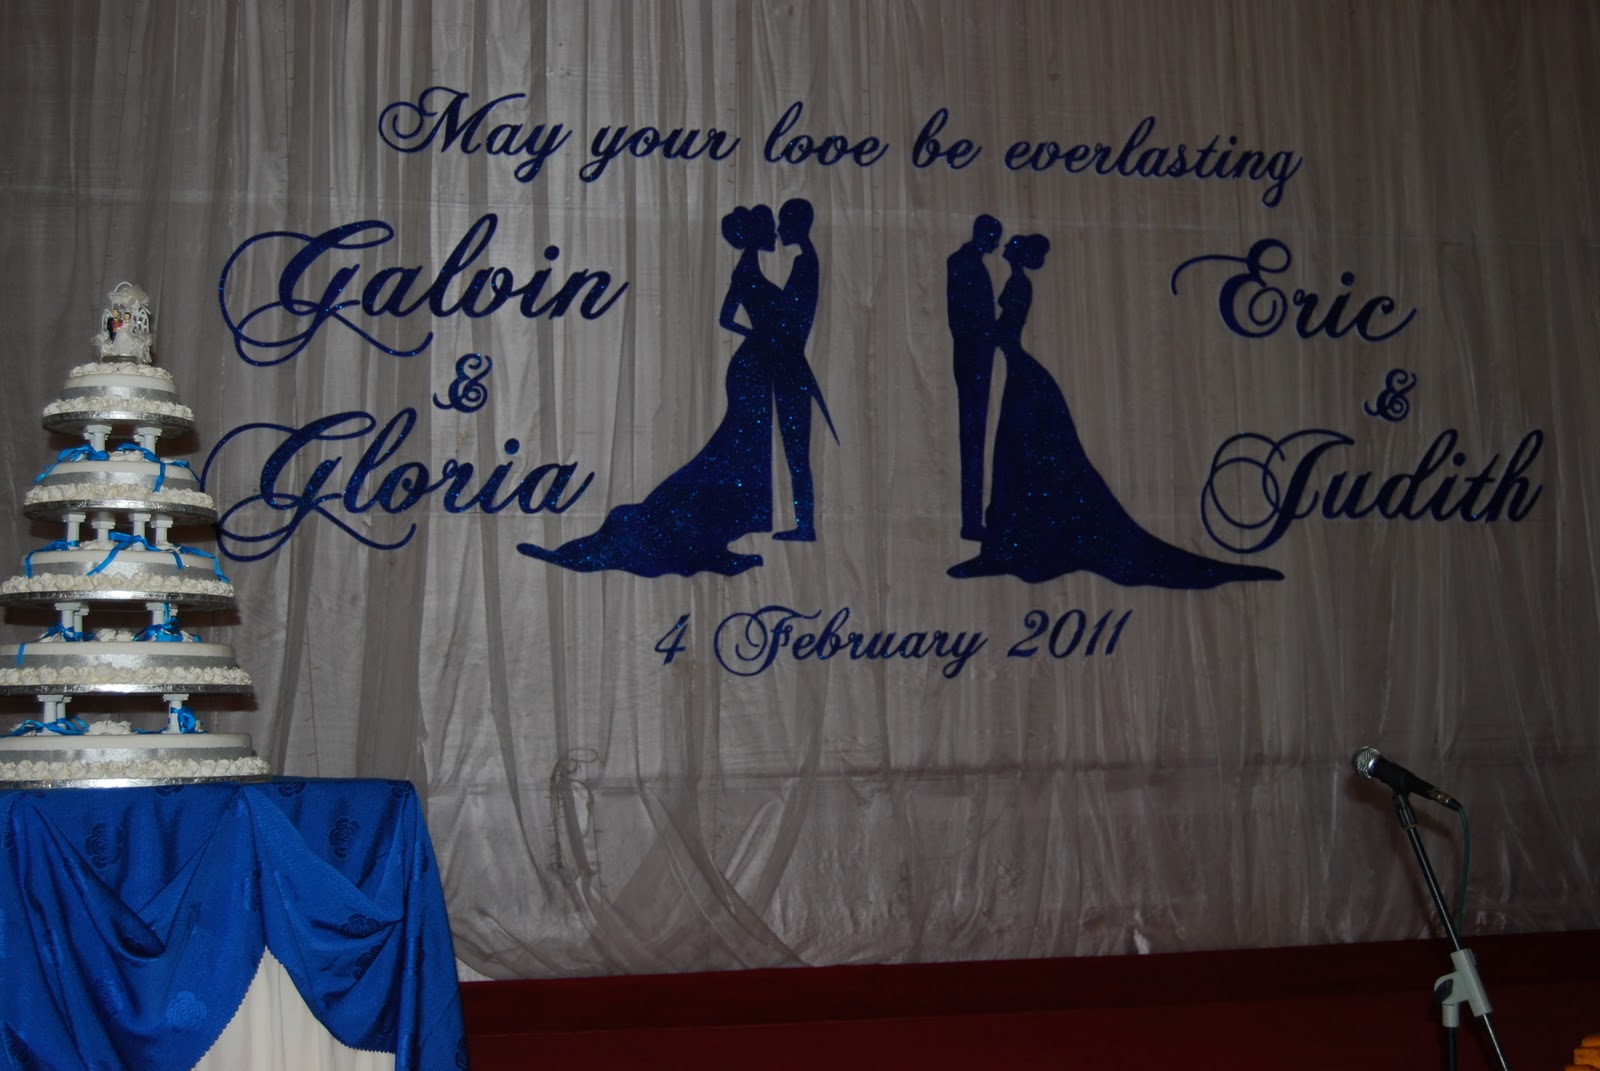 Wedding backdrop for Galvin